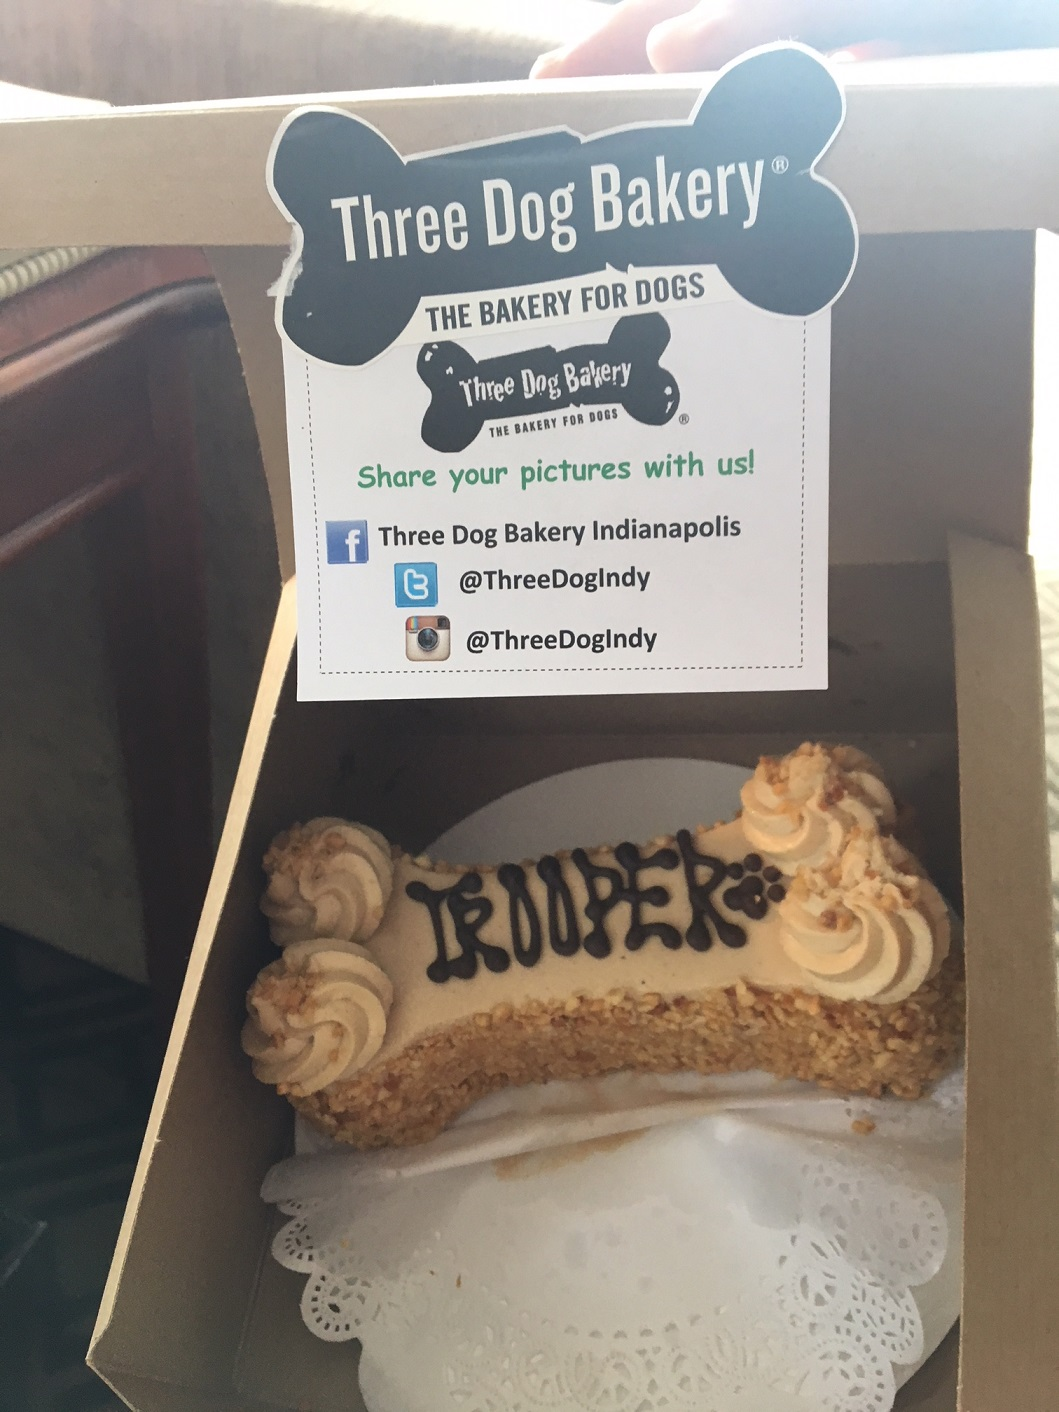 A Trooper doggie cake awaits the doggie at the Omni Severin Hotel in Indianapolis